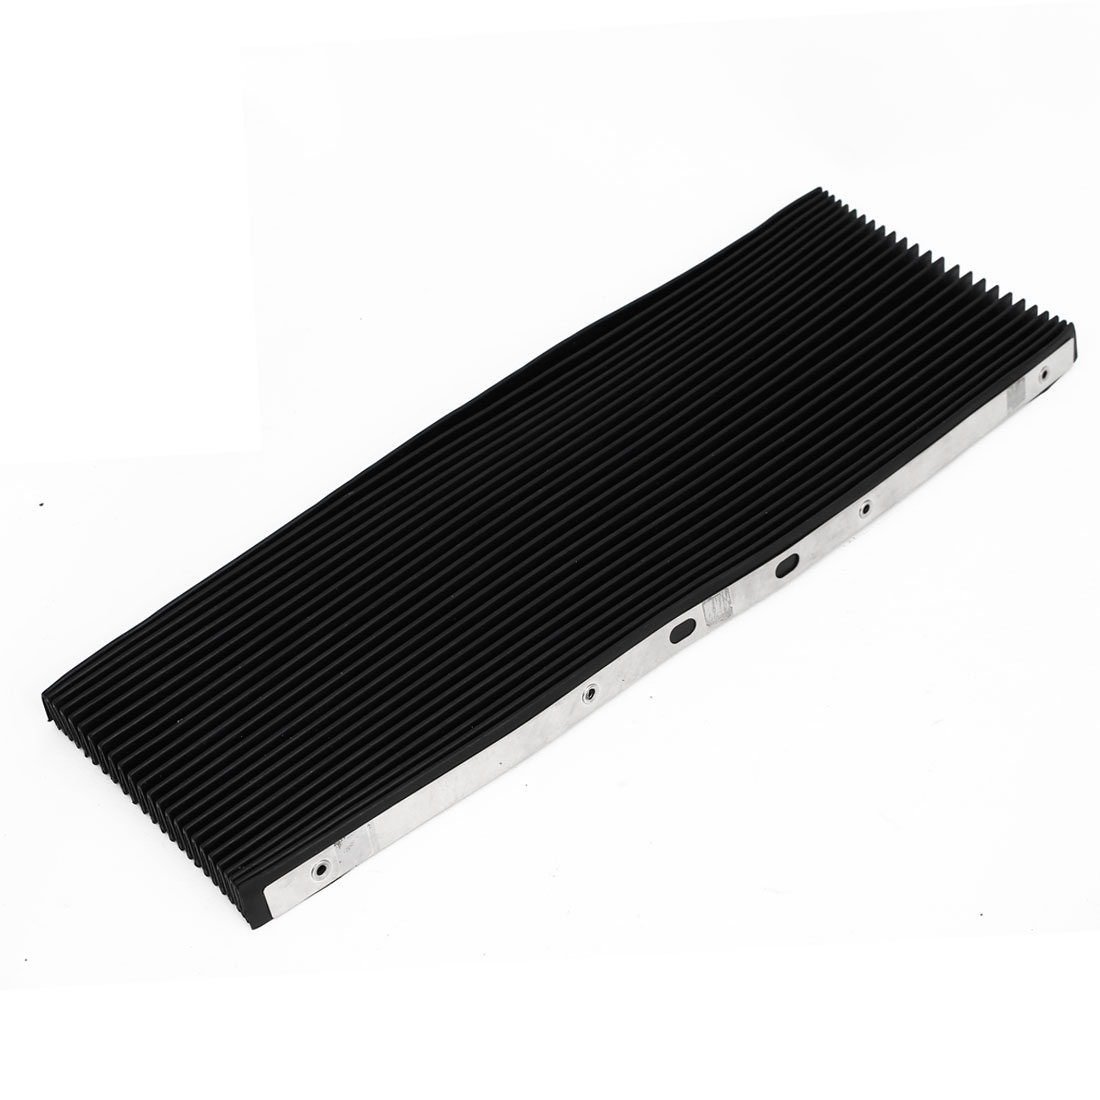 CNC Machine Fitting Foldable Stretchy Flexible Organ Shaped Anti Dirt Dust Protective Cover Black 40.5cmx50cm